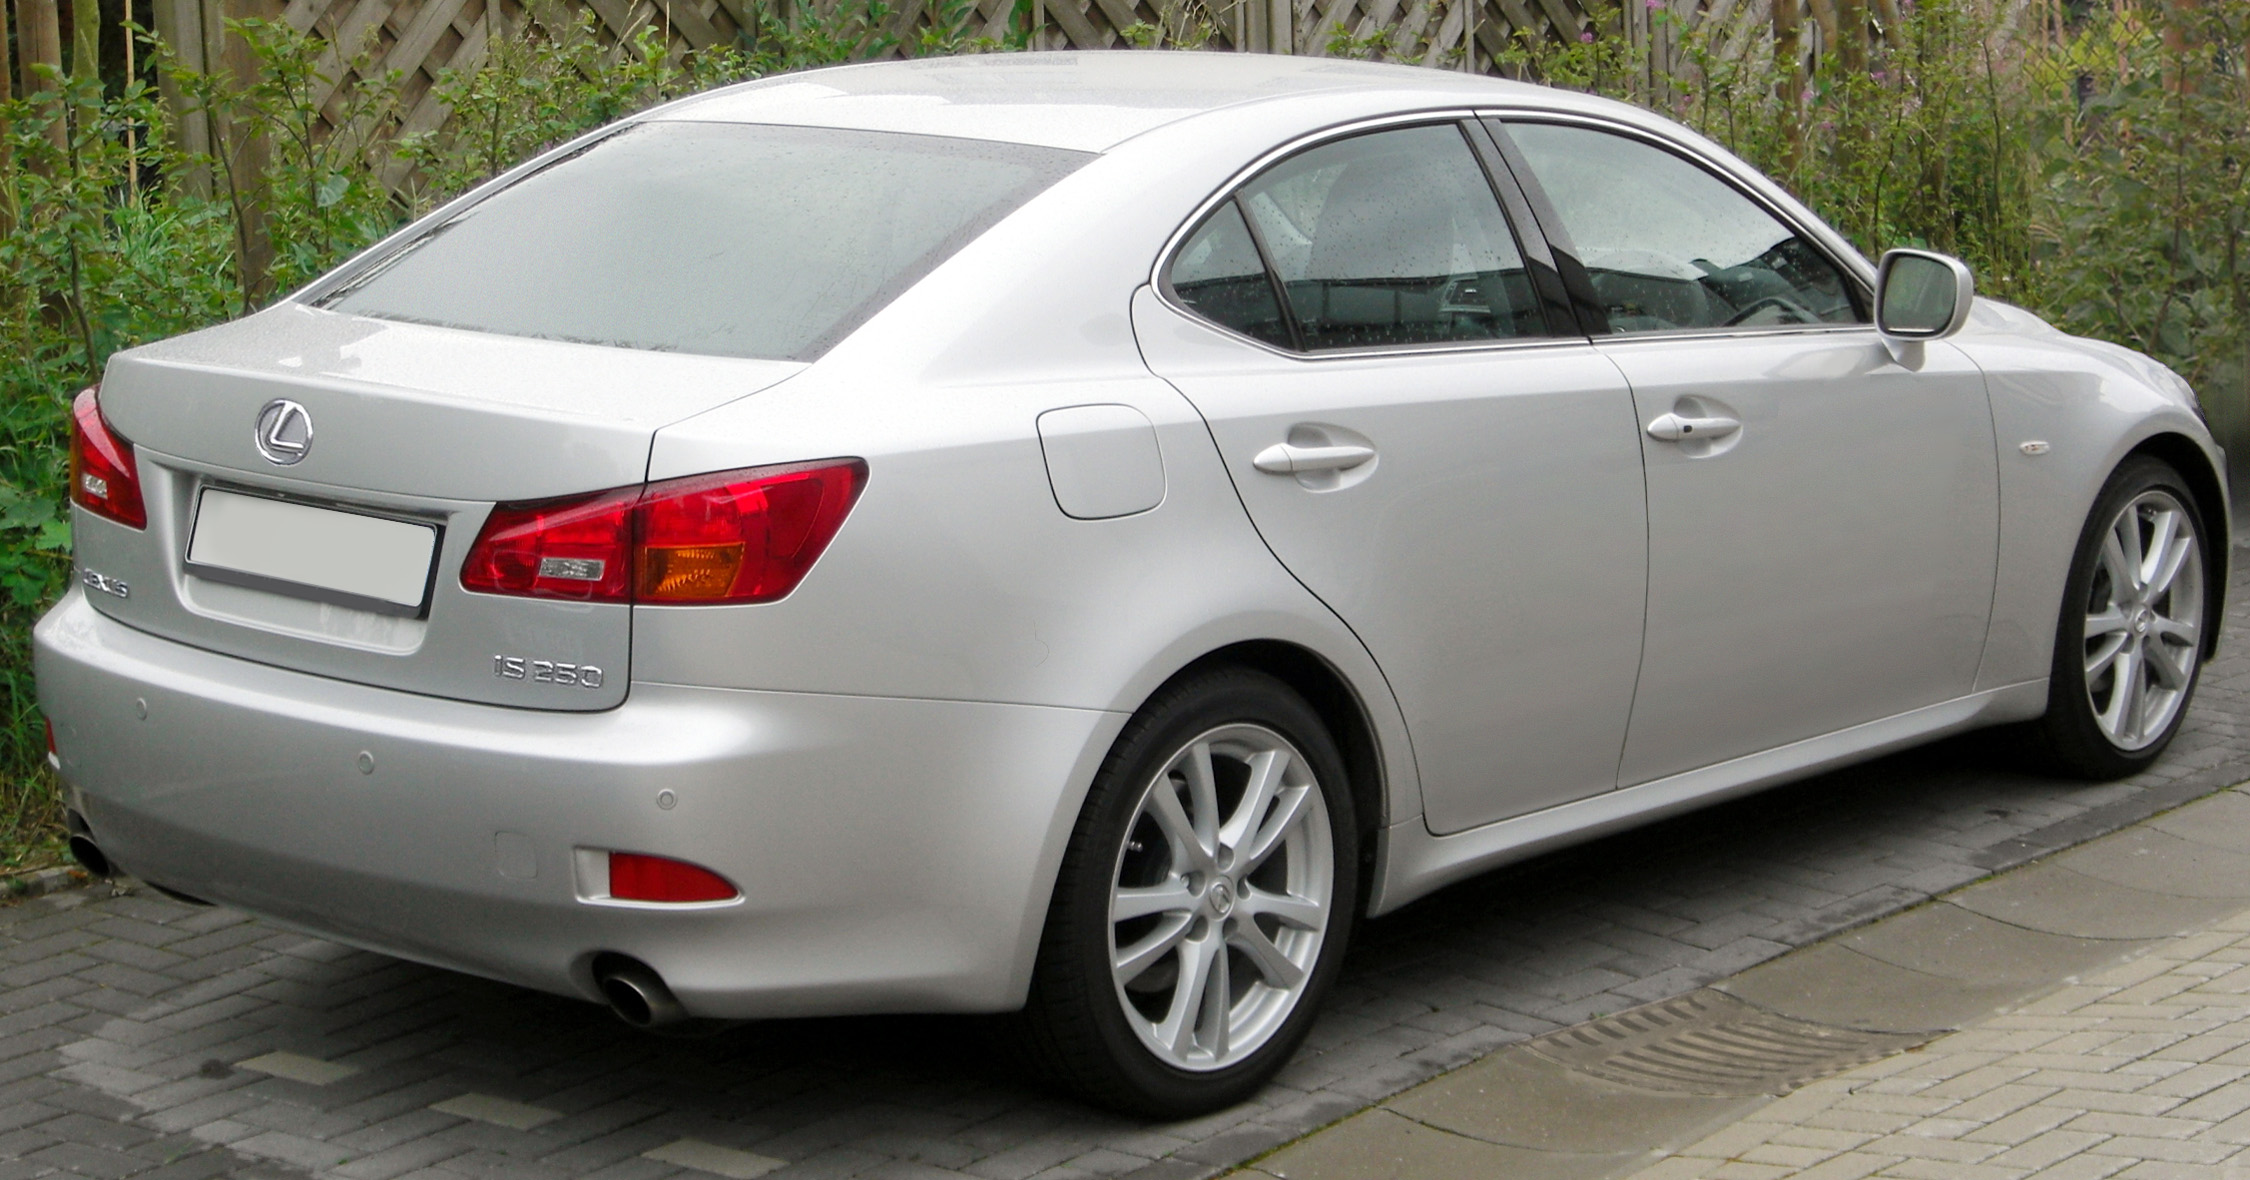 2006 Lexus Is 250 Awd Specs | Car Reviews 2018